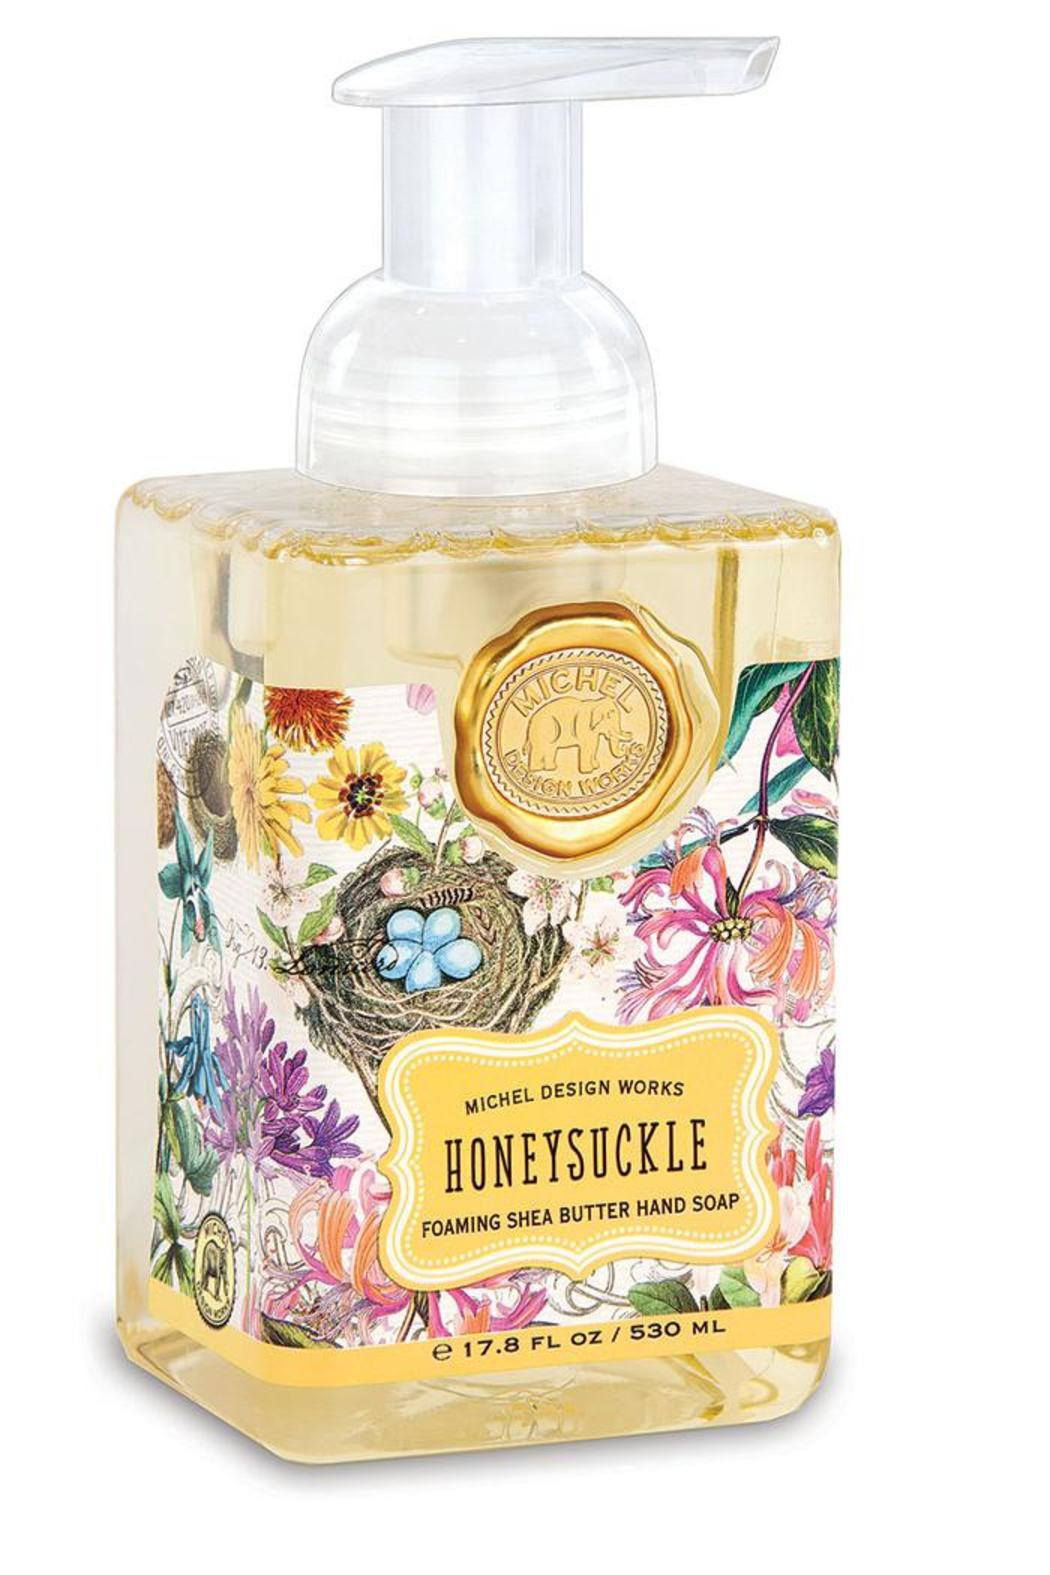 Michel Design Works Honeysuckle Foaming Soap From Boulder